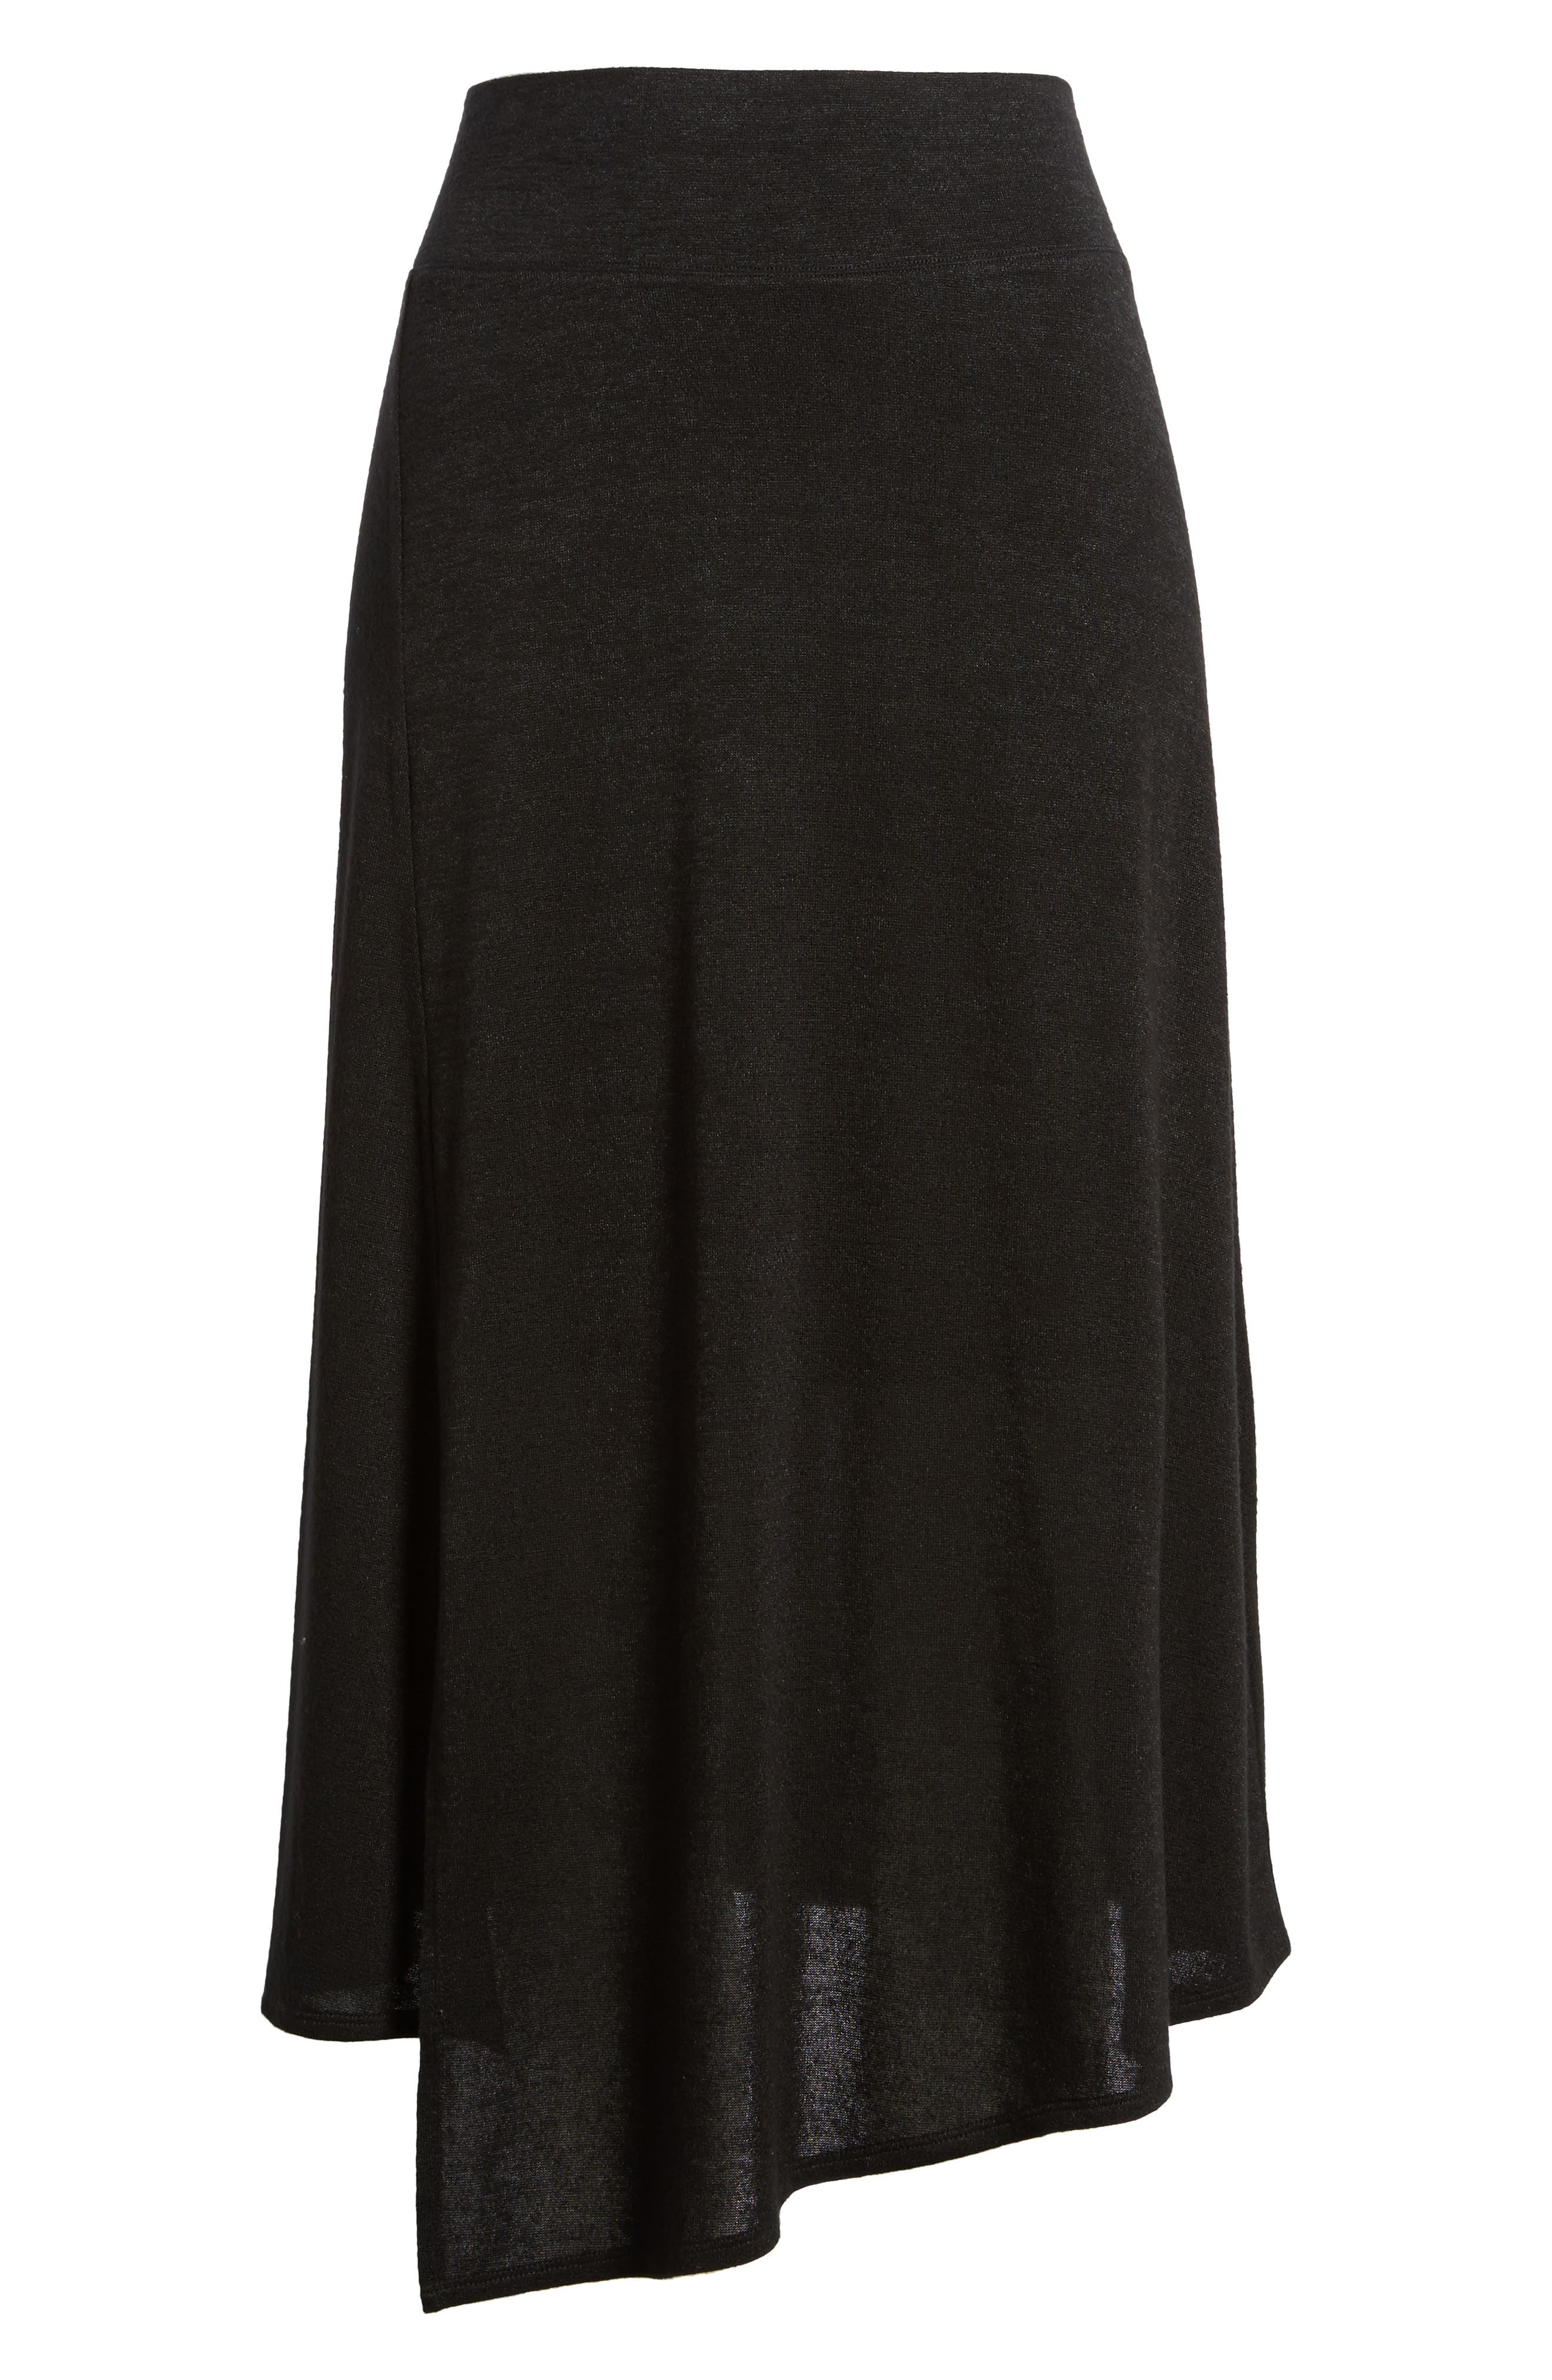 Nic + Zoe Every Occasion Faux Wrap Skirt,                             Alternate thumbnail 11, color,